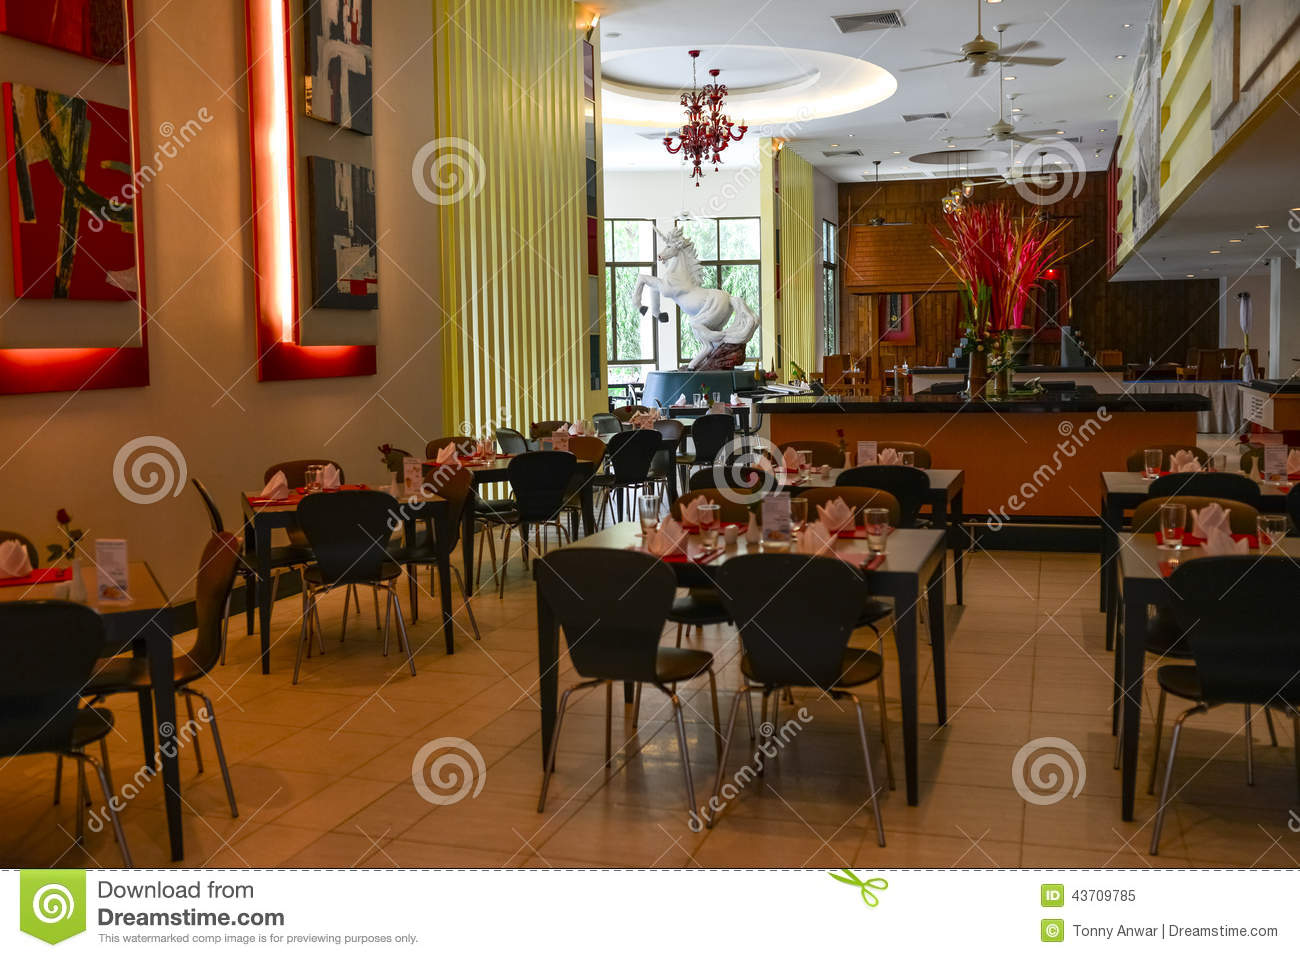 Restaurant editorial image